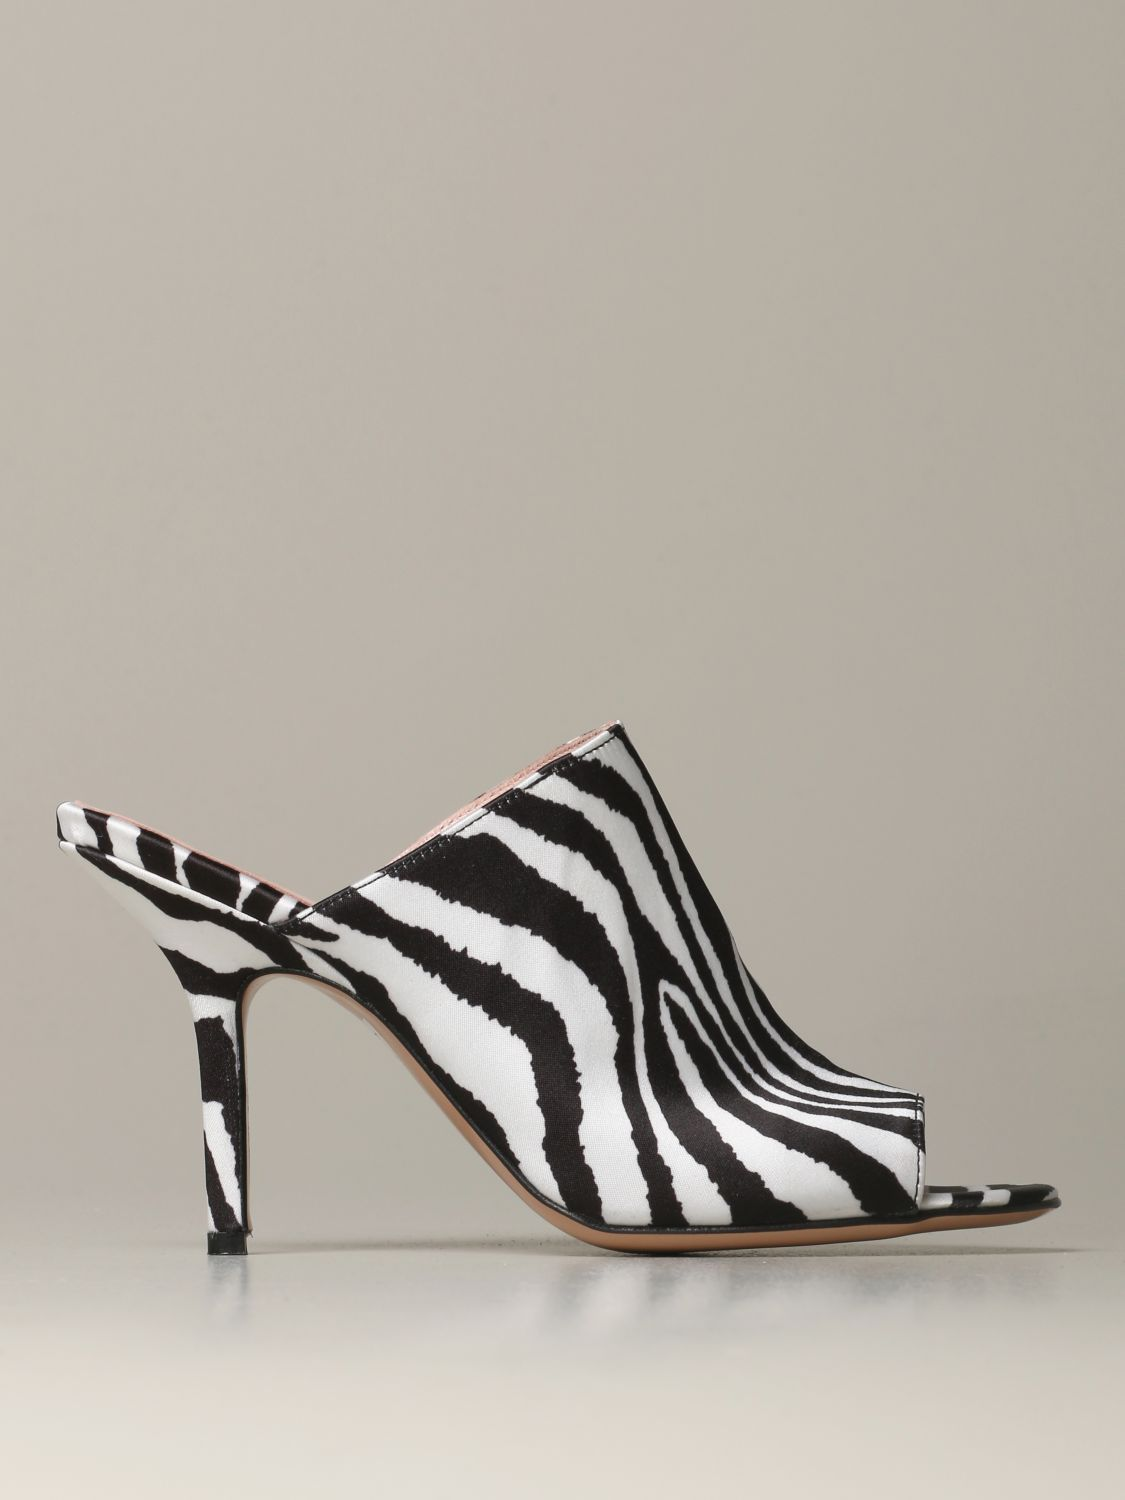 Heeled sandals Anna F.: Shoes women Anna F. multicolor 1